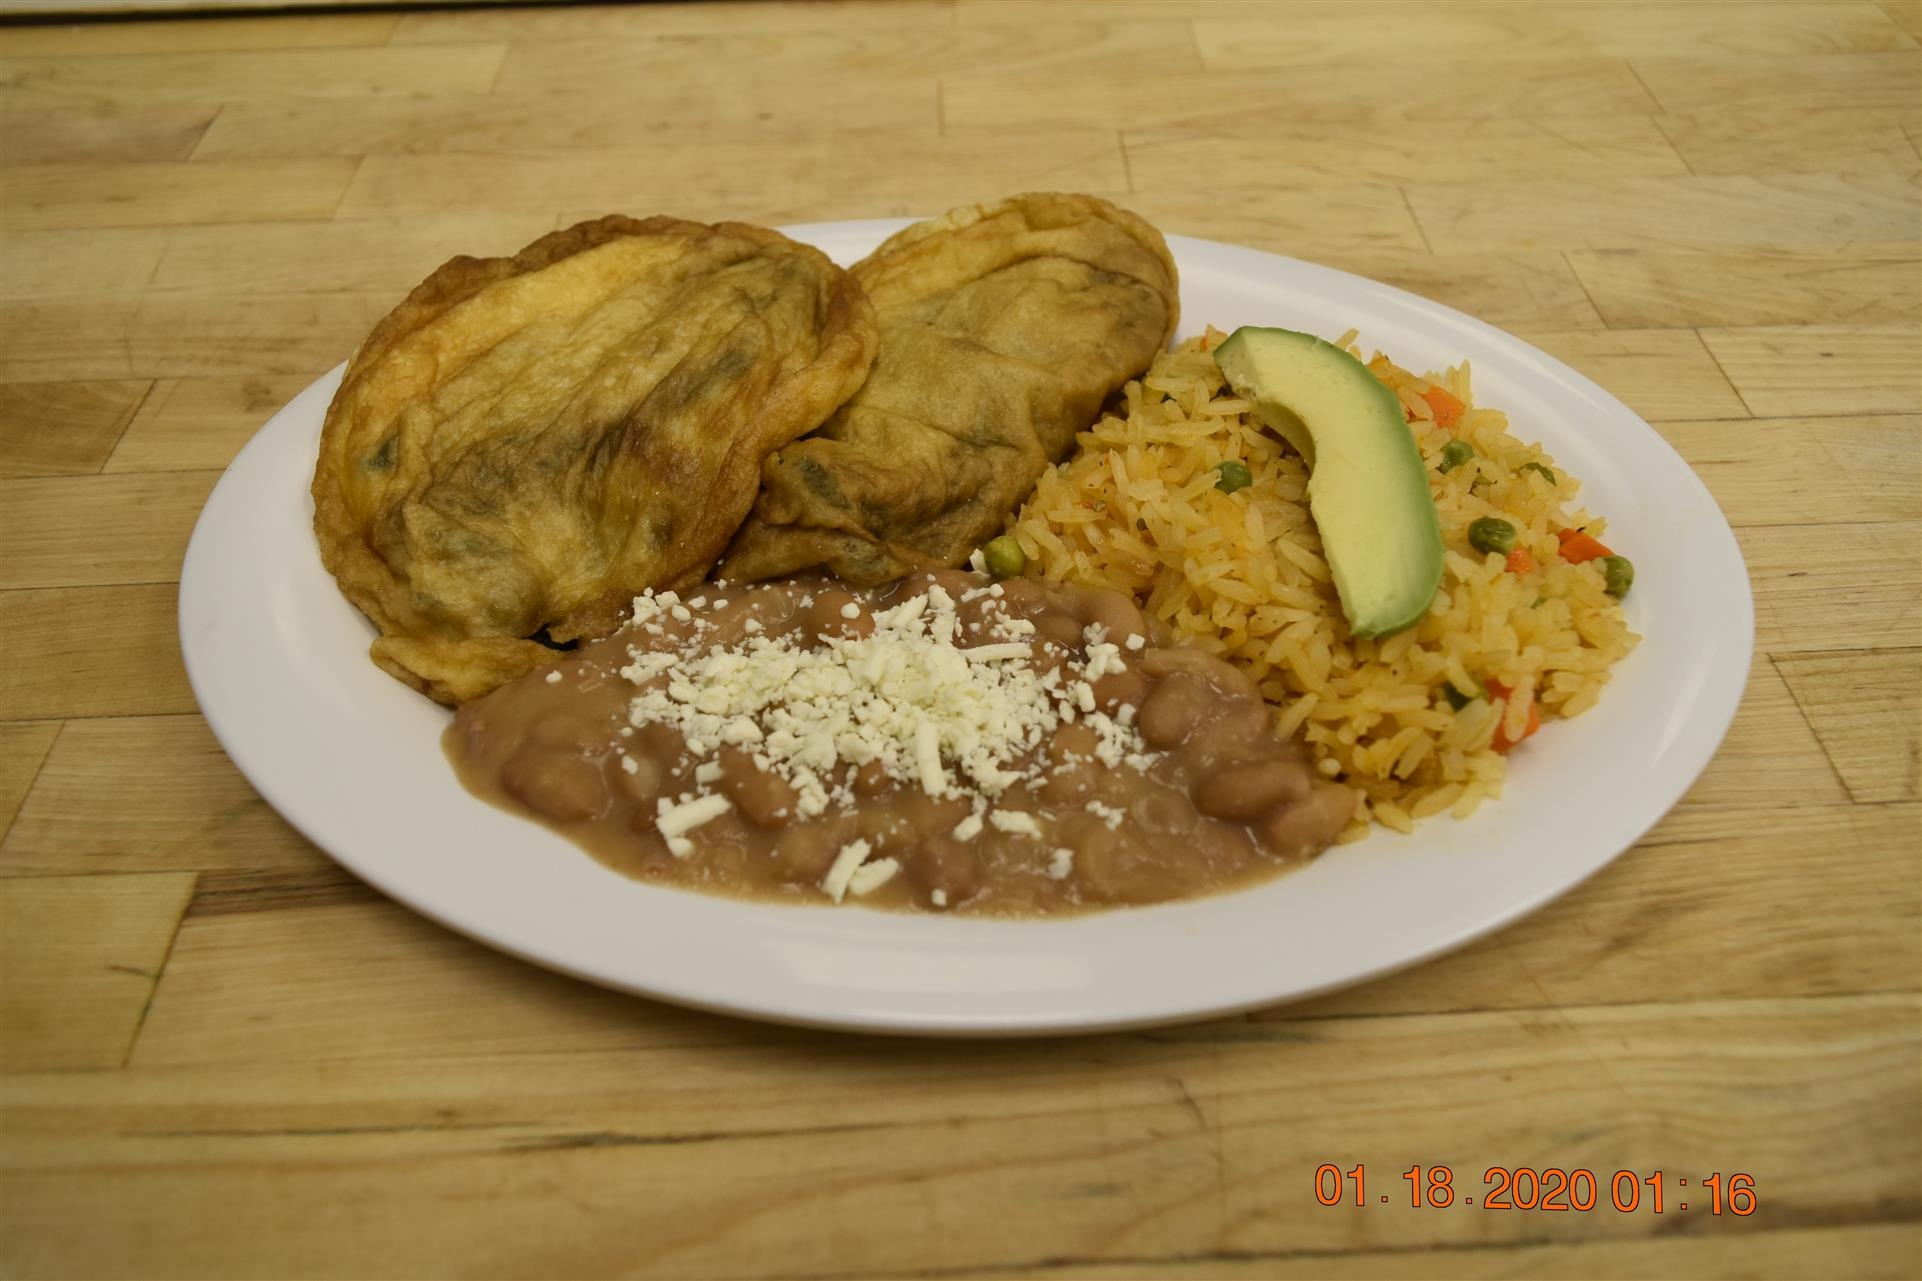 fried dish with side of rice and beans